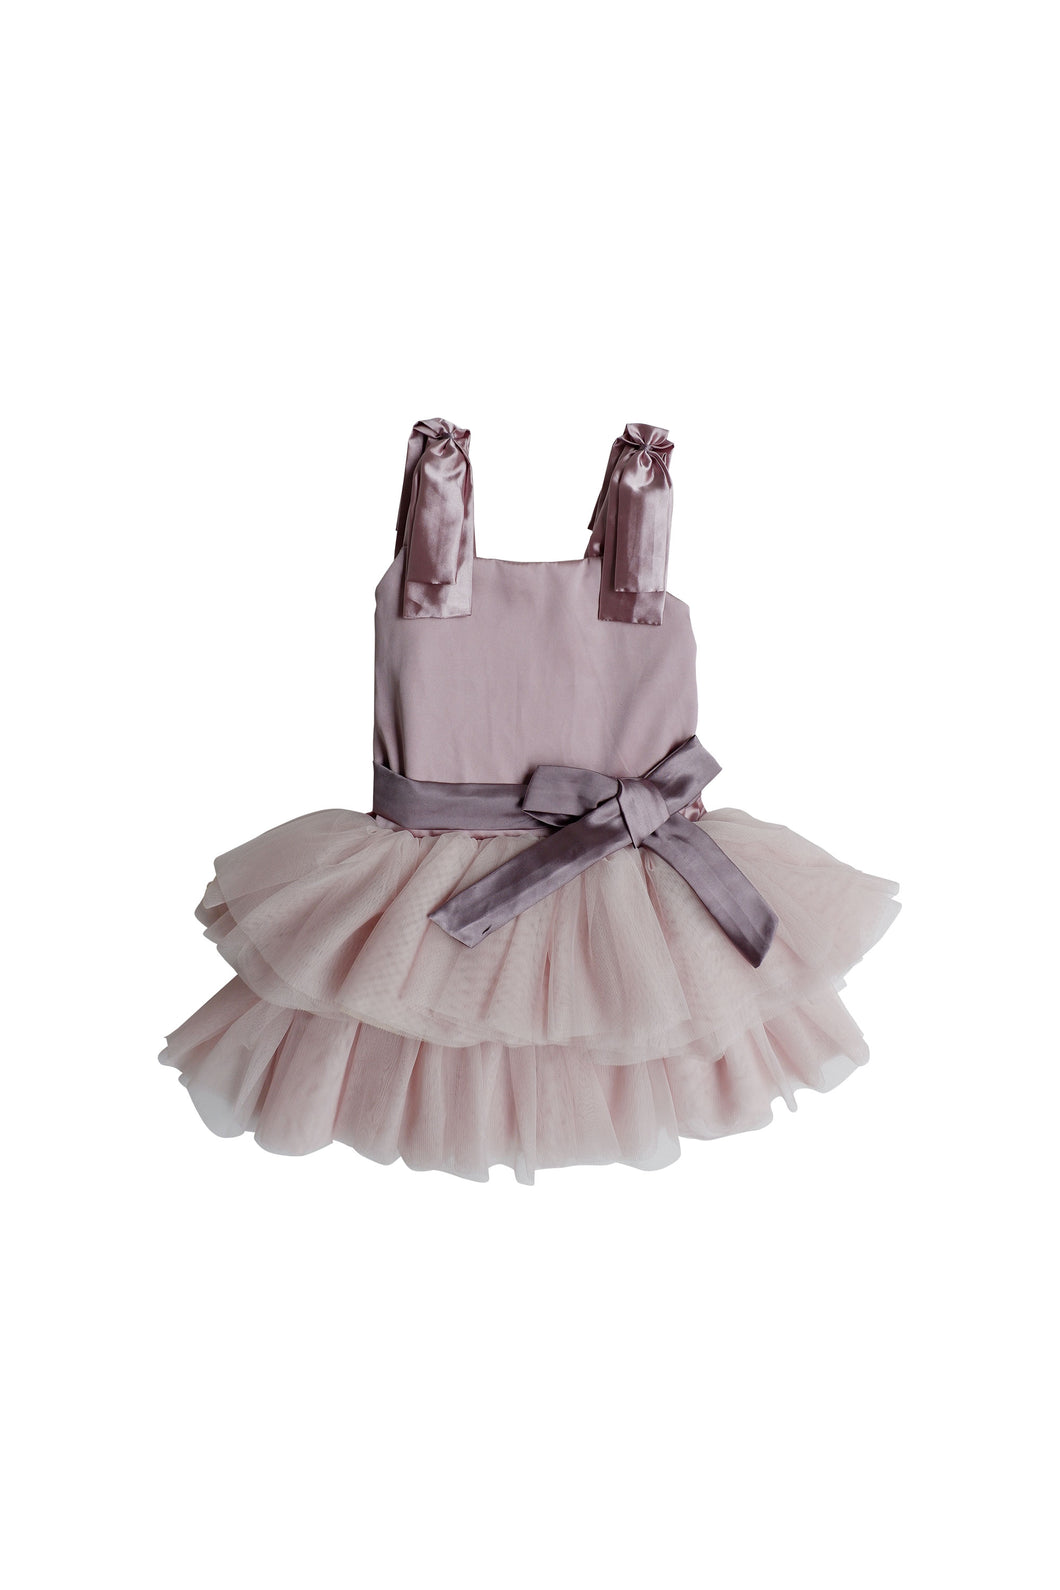 Copy Ballerina Dress - Violet- 2/3 Weeks Delivery